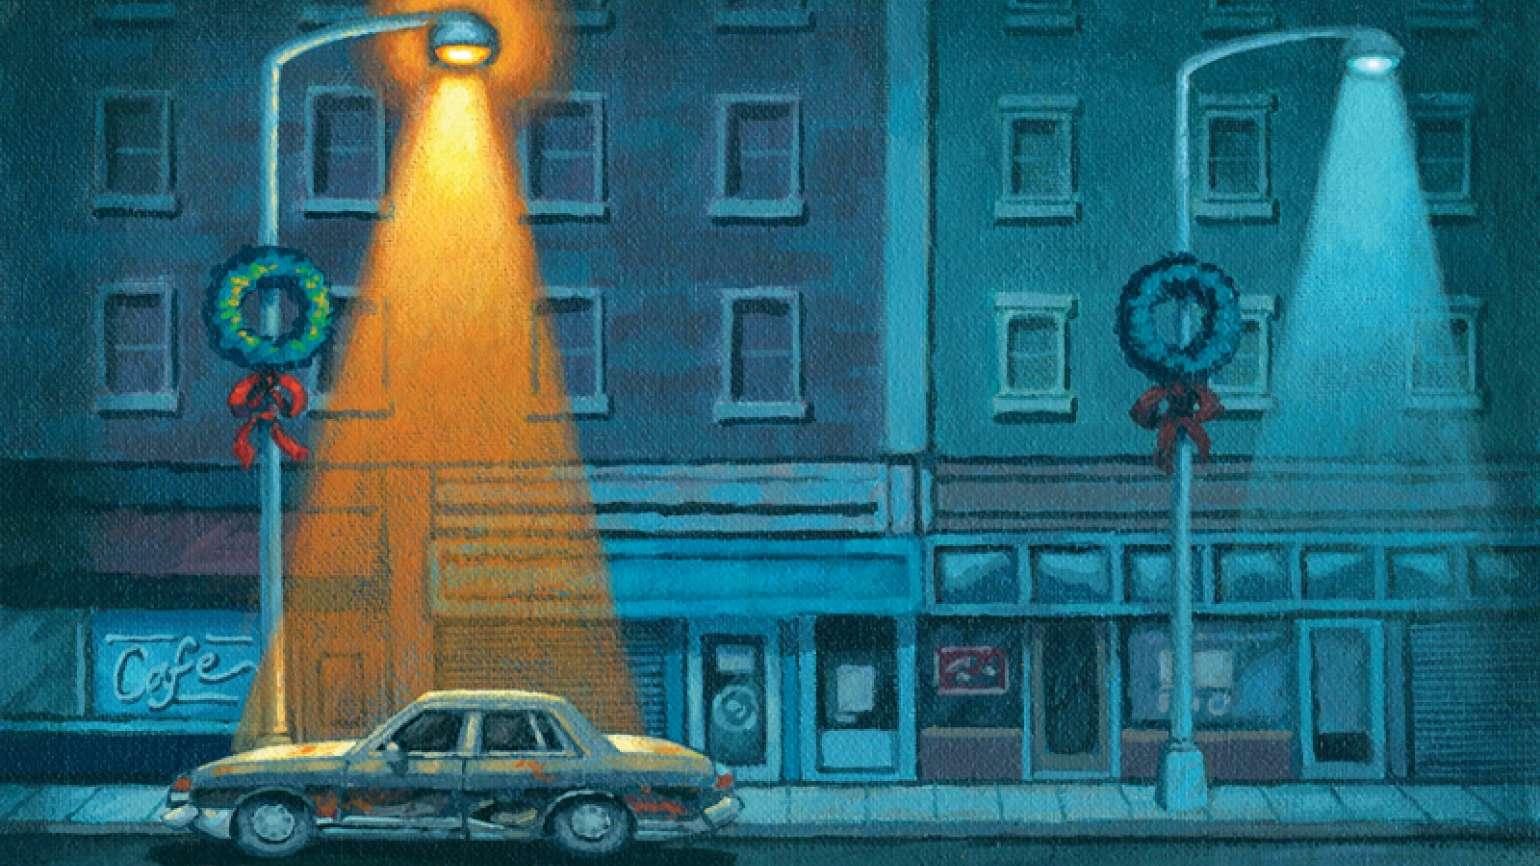 An artist's rendering of an old car lit by the golden glow of a streetlight